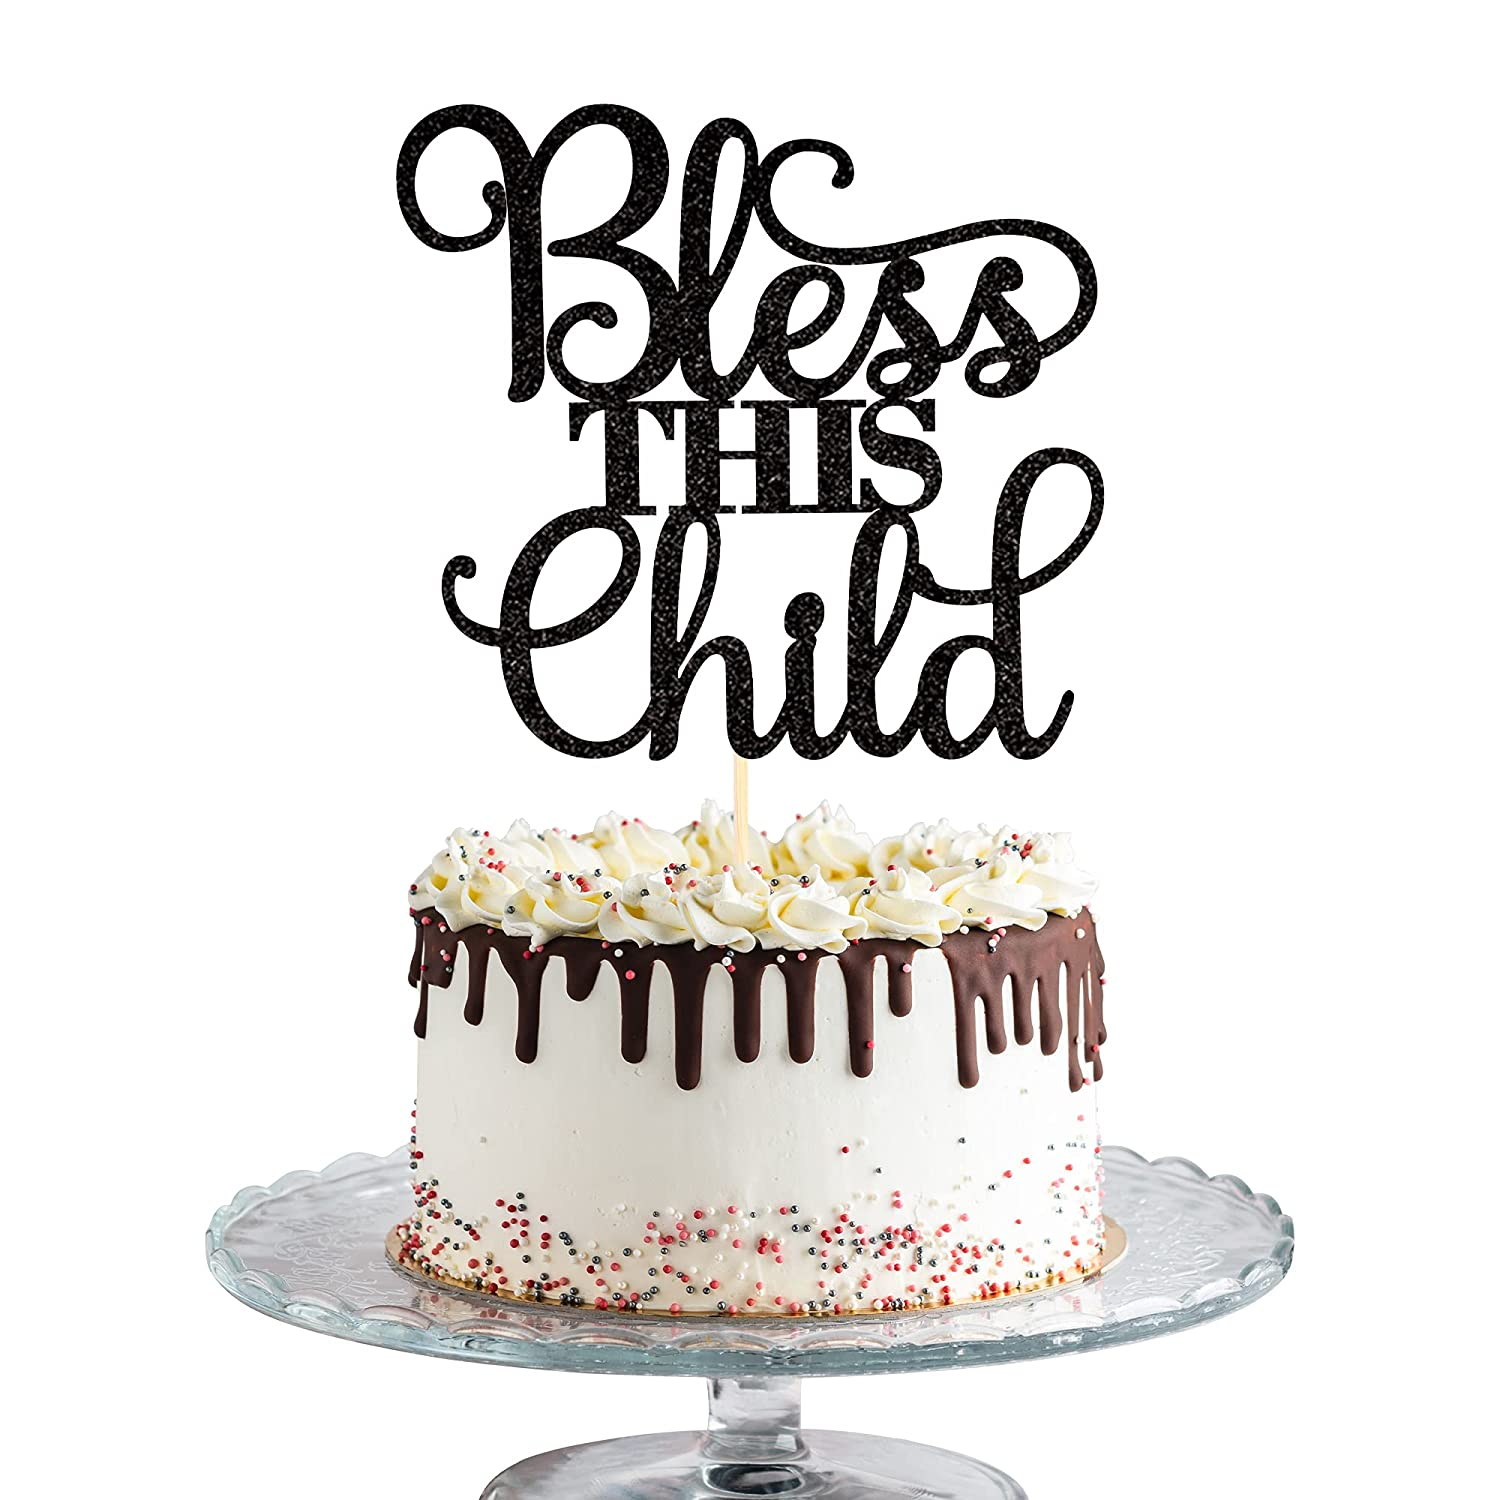 1 PCS Bless This Cheap bargain Child Cake Topper Communion Challenge the lowest price Glitter First God B